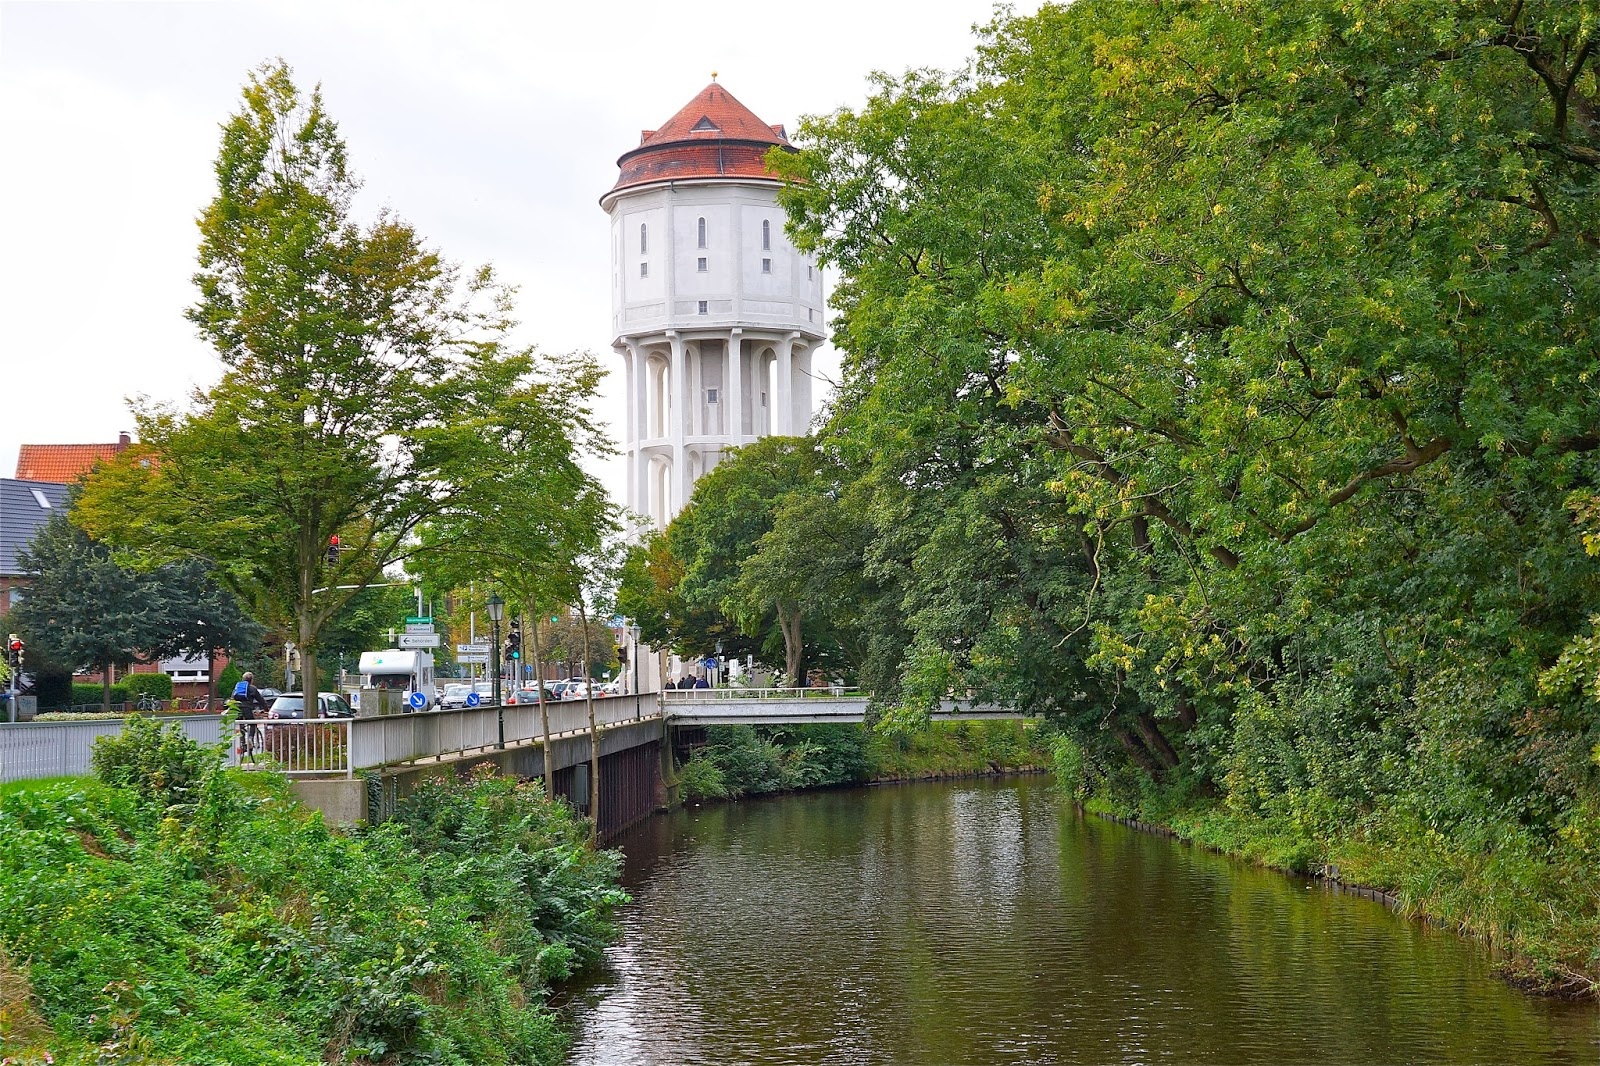 Picture of the water tower in Emden, Germany.